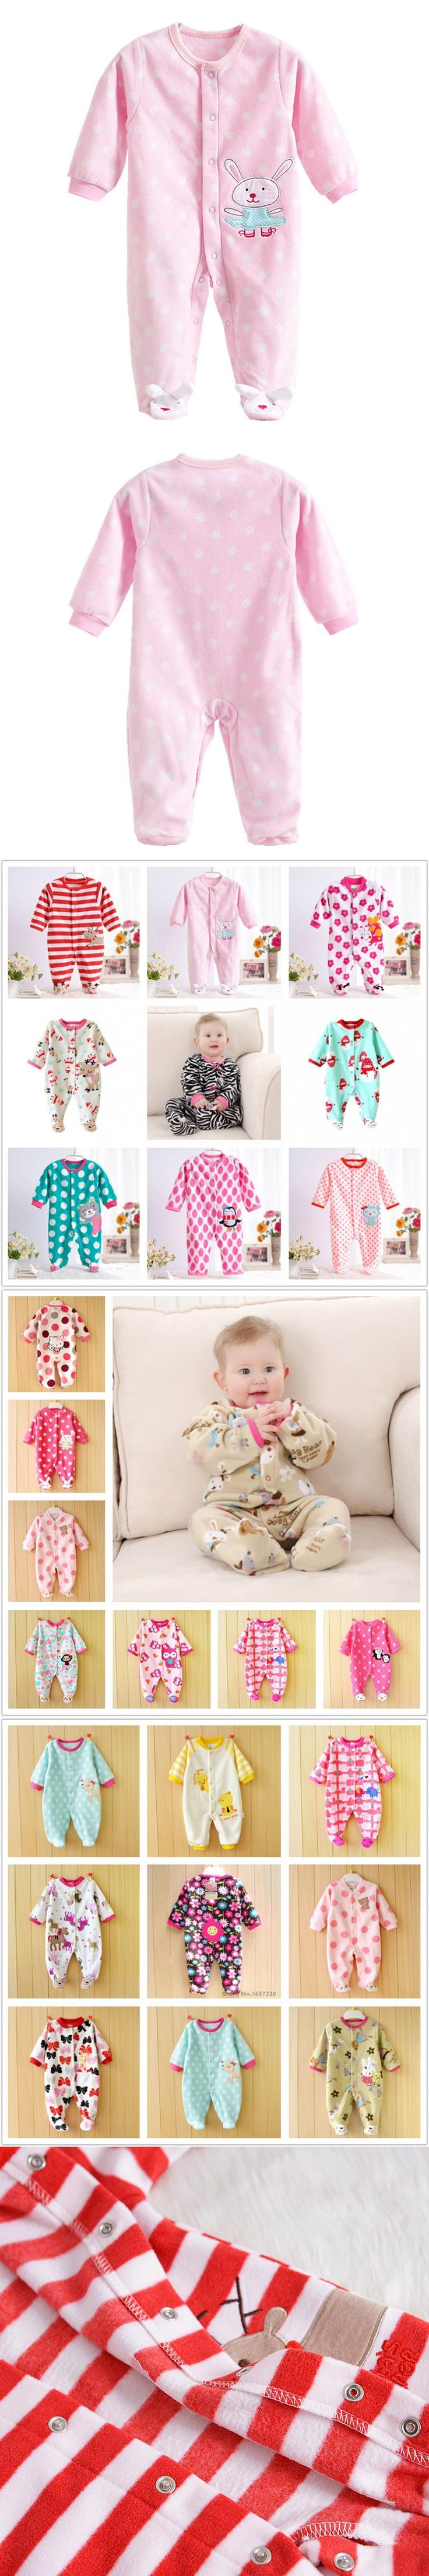 Spring Fleece Baby Rompers Cute Pink Infant Baby Girls Jumpsuits Footed Coverall Newborn Baby Girls Clothing V20